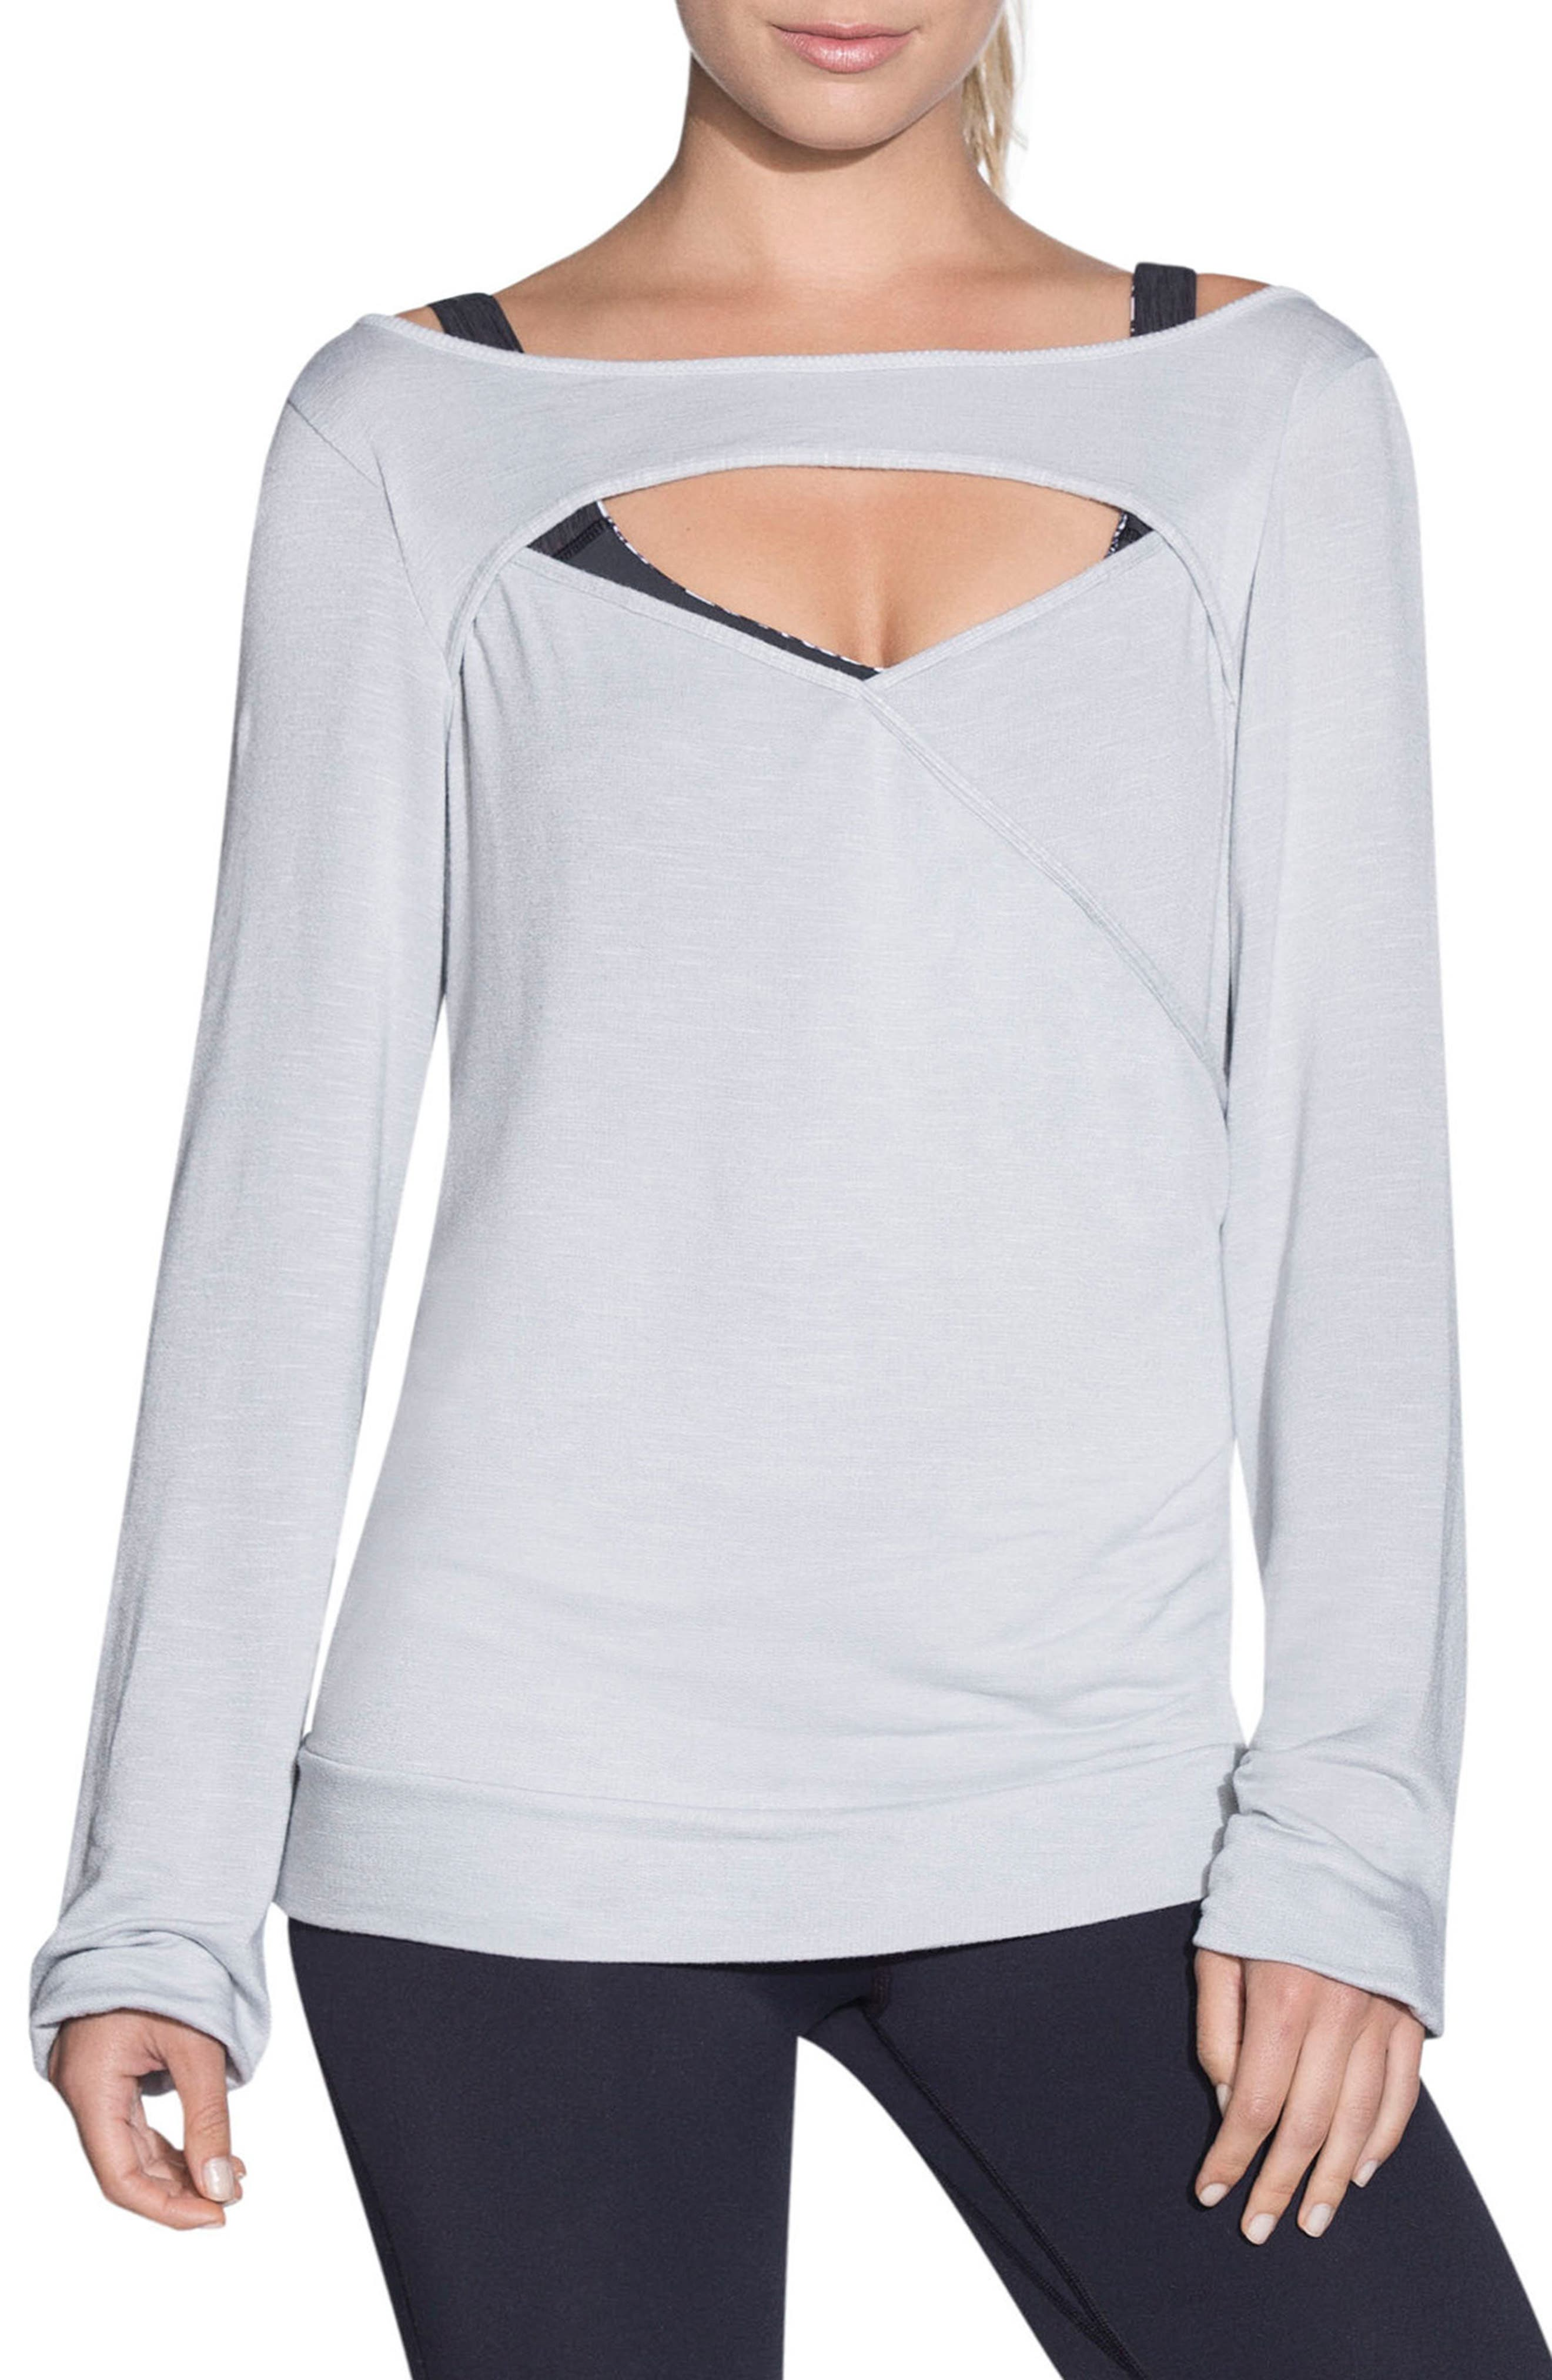 Crescent Long Sleeve Top,                         Main,                         color, 052